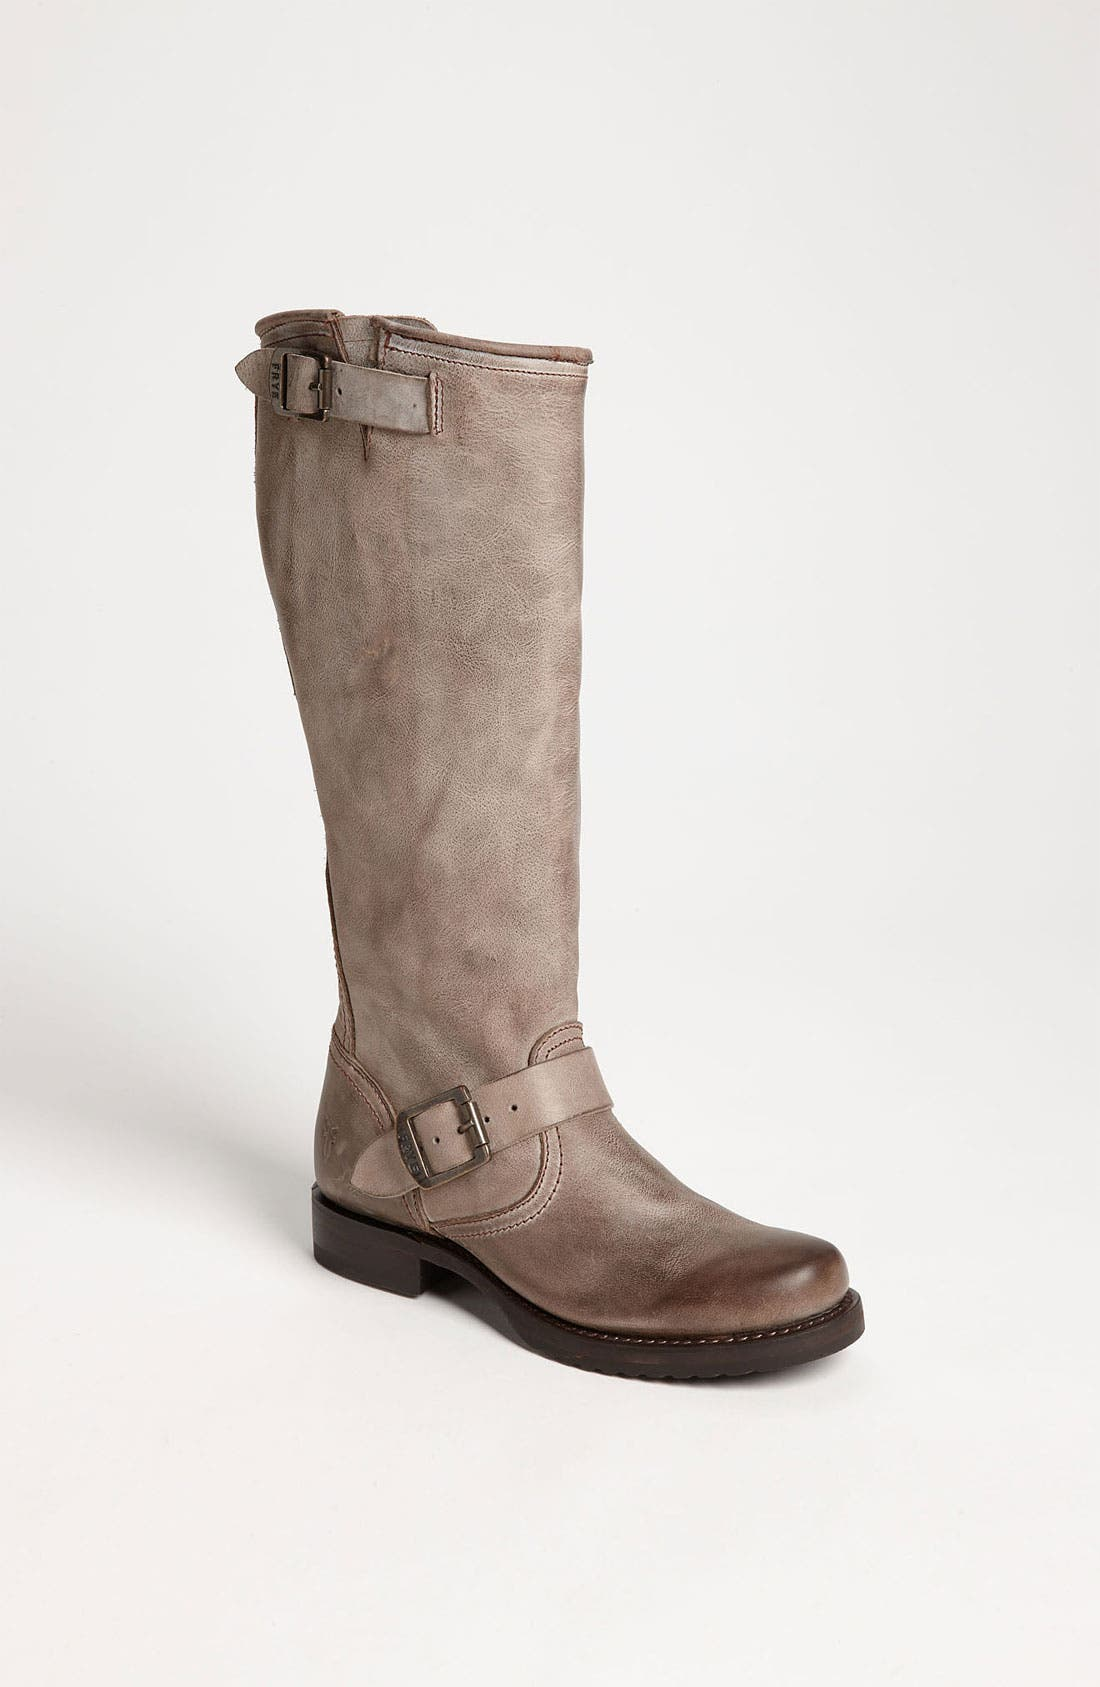 Alternate Image 1 Selected - Frye 'Veronica Slouch' Boot (Regular & Wide Calf) (Women)